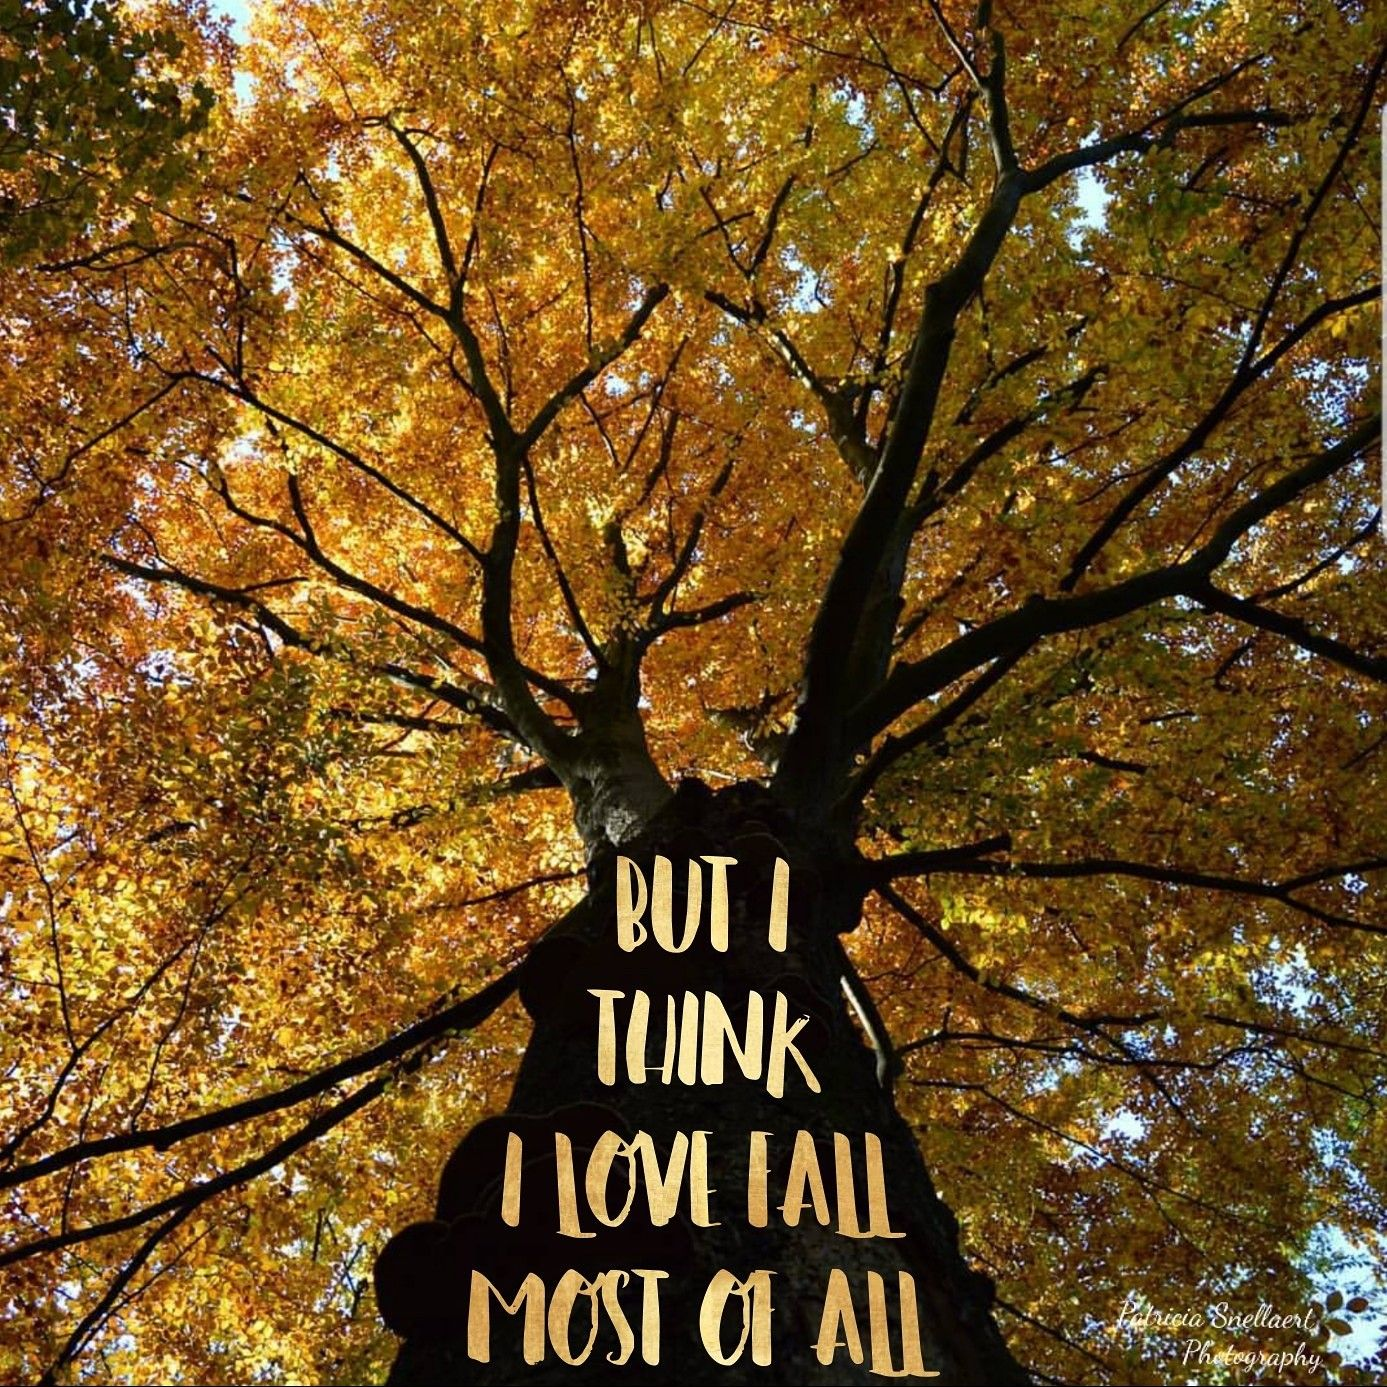 Download 'But I think I love fall most of all' Picture: P ...